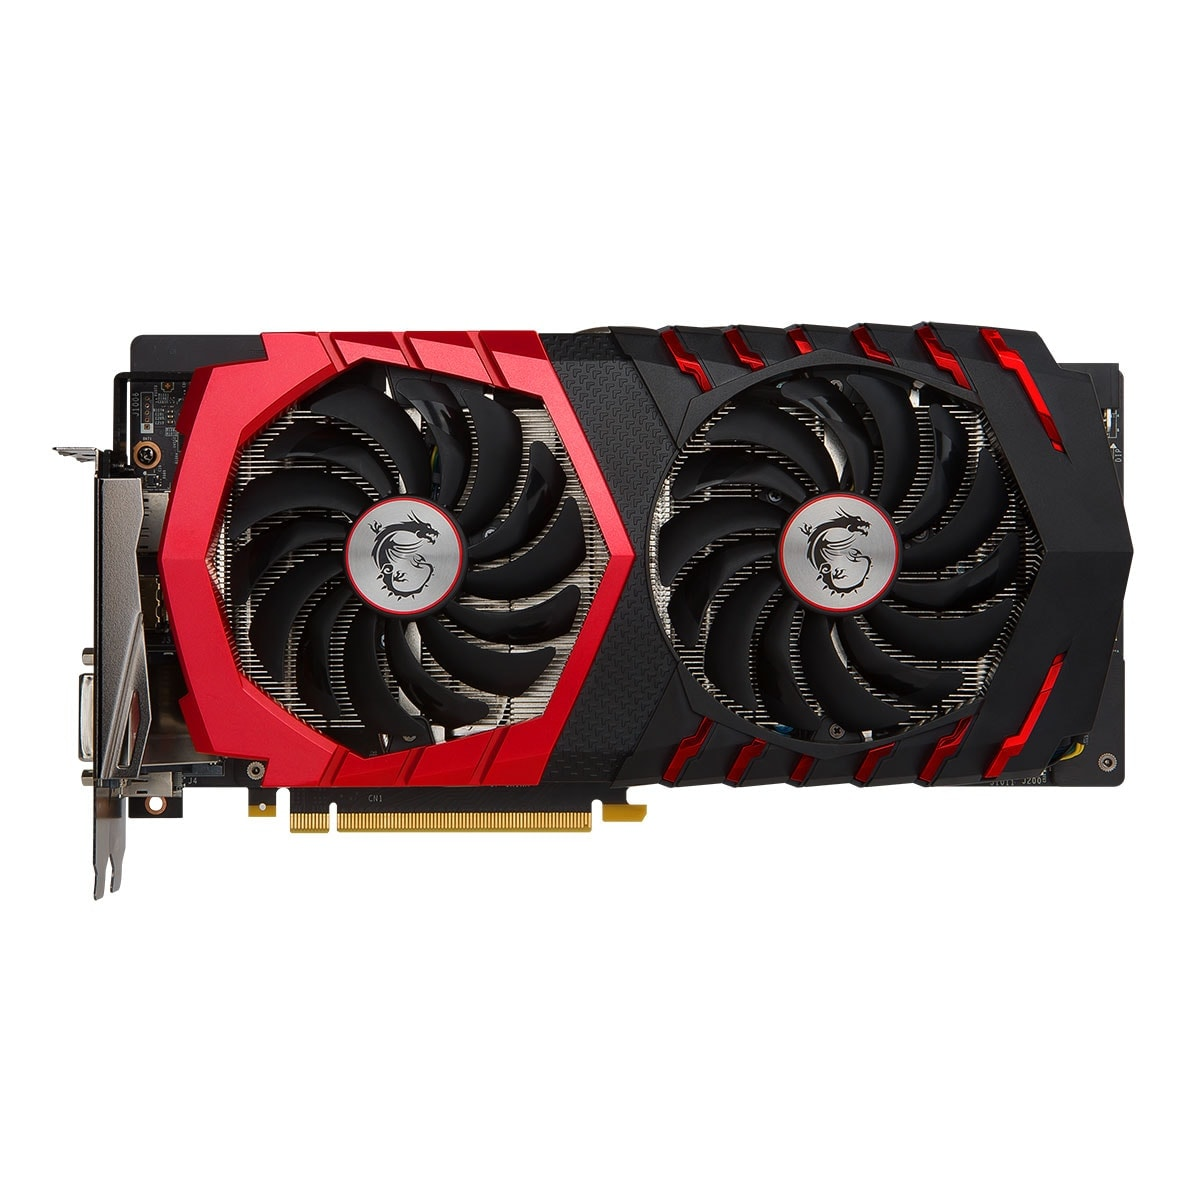 MSI GeForce GTX 1060 GAMING X 6G  (GeForce GTX 1060 GAMING X 6G ) - Achat / Vente Carte Graphique sur Cybertek.fr - 2